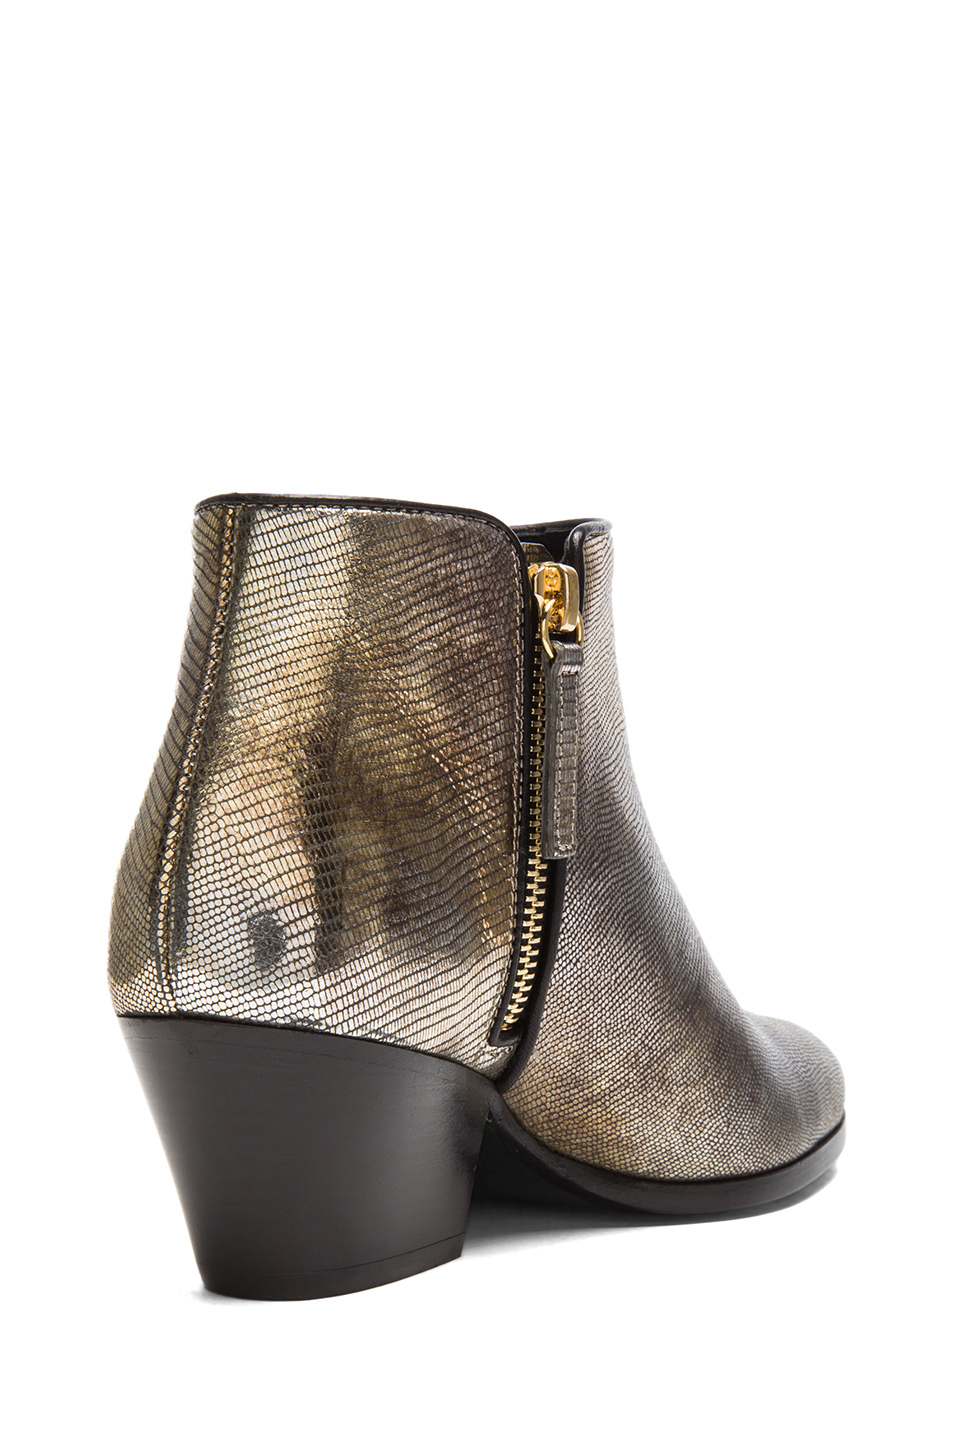 ebay online Giuseppe Zanotti Daddy 20 Ankle Boots release dates outlet good selling lowest price for sale low price DypZC